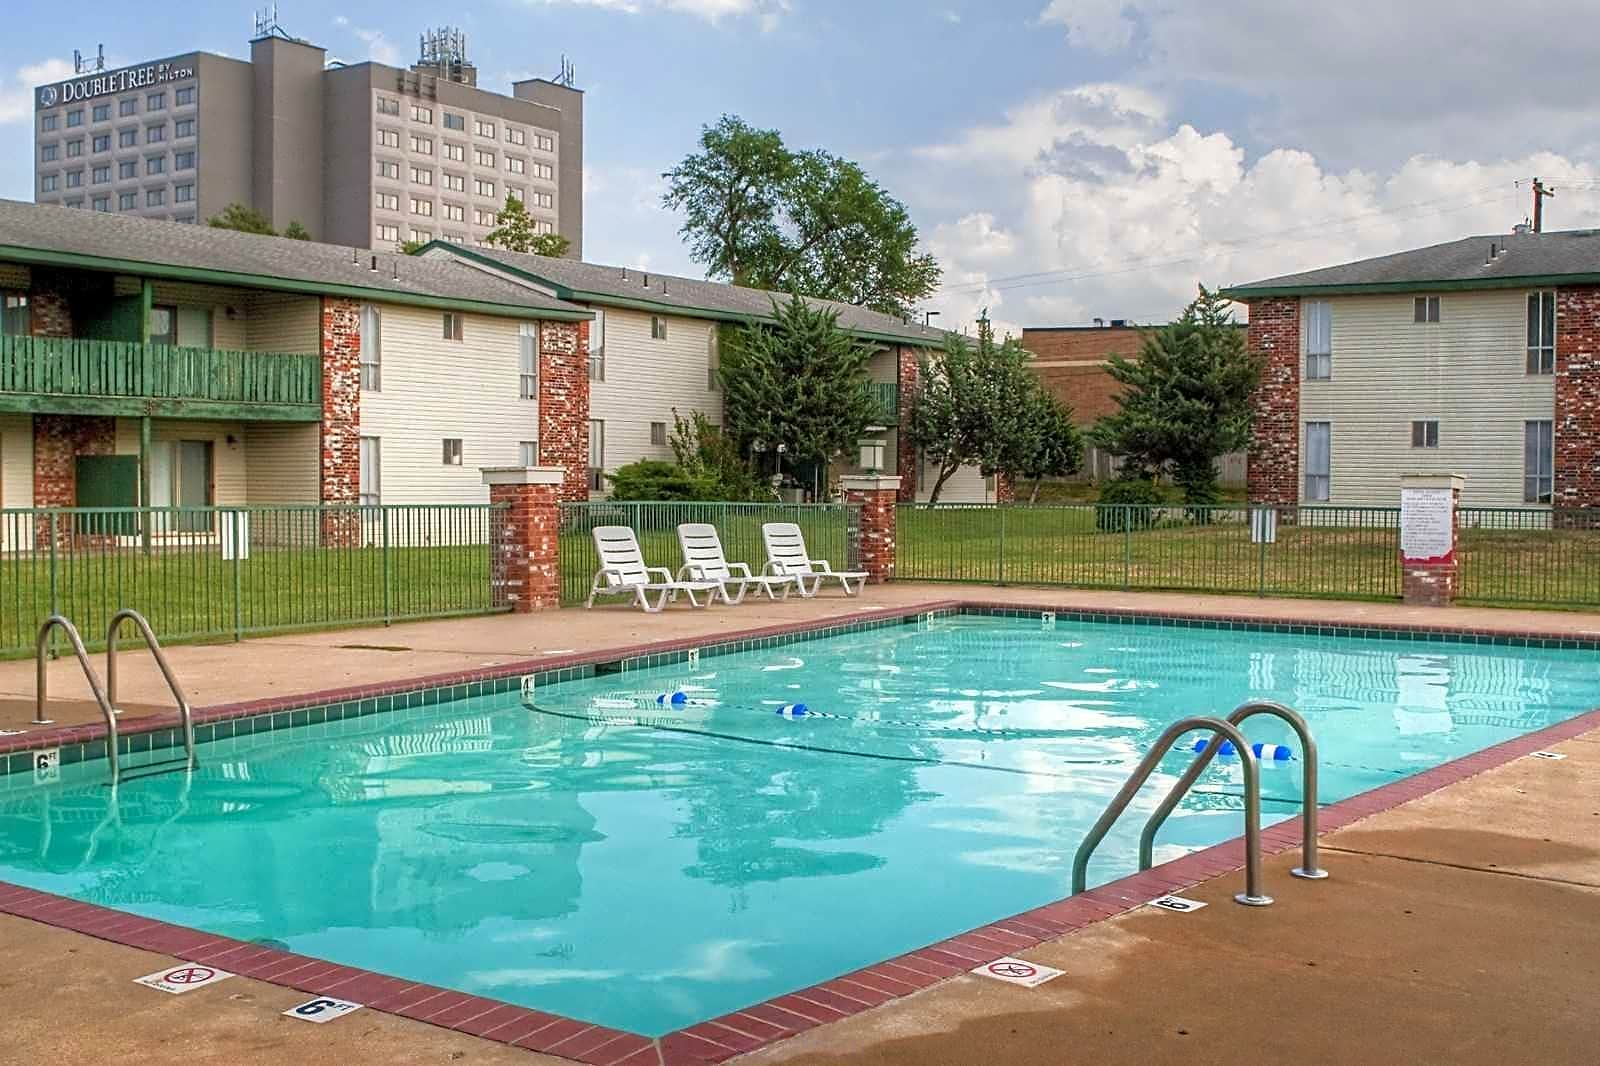 Hillcrest 90 Apartments - Springfield, MO 65803